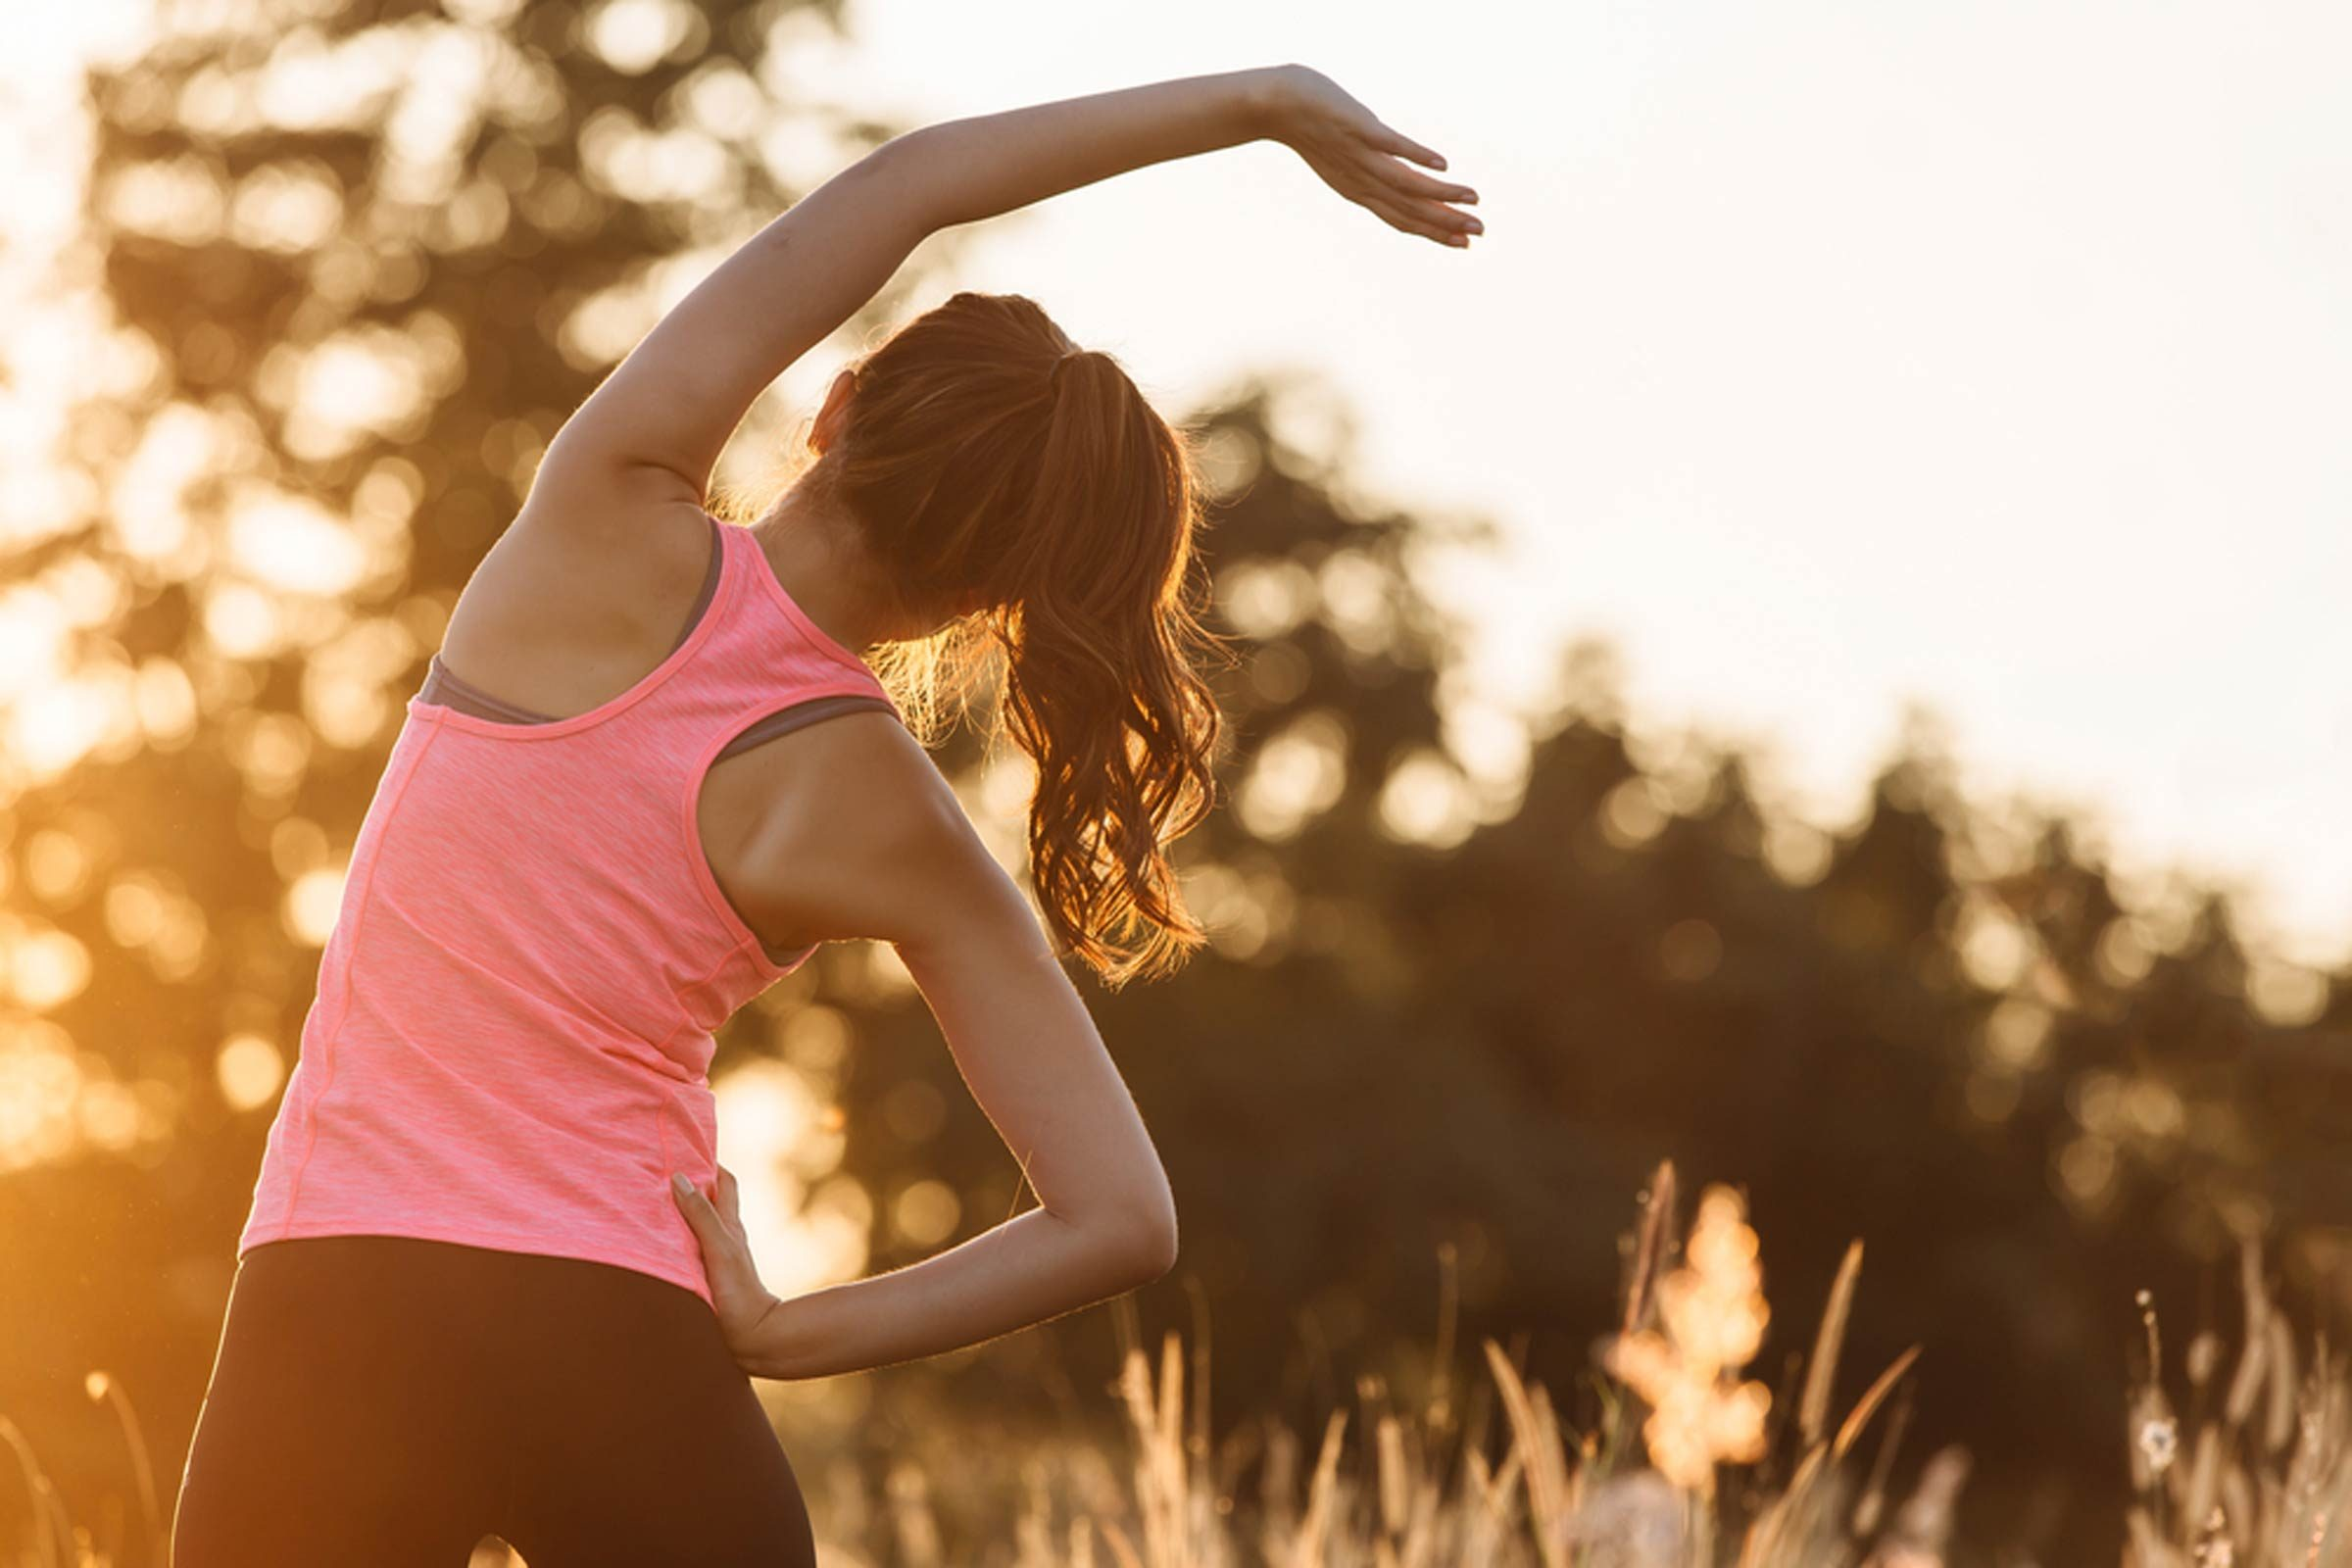 Woman in a pink tank top stretching outdoors.